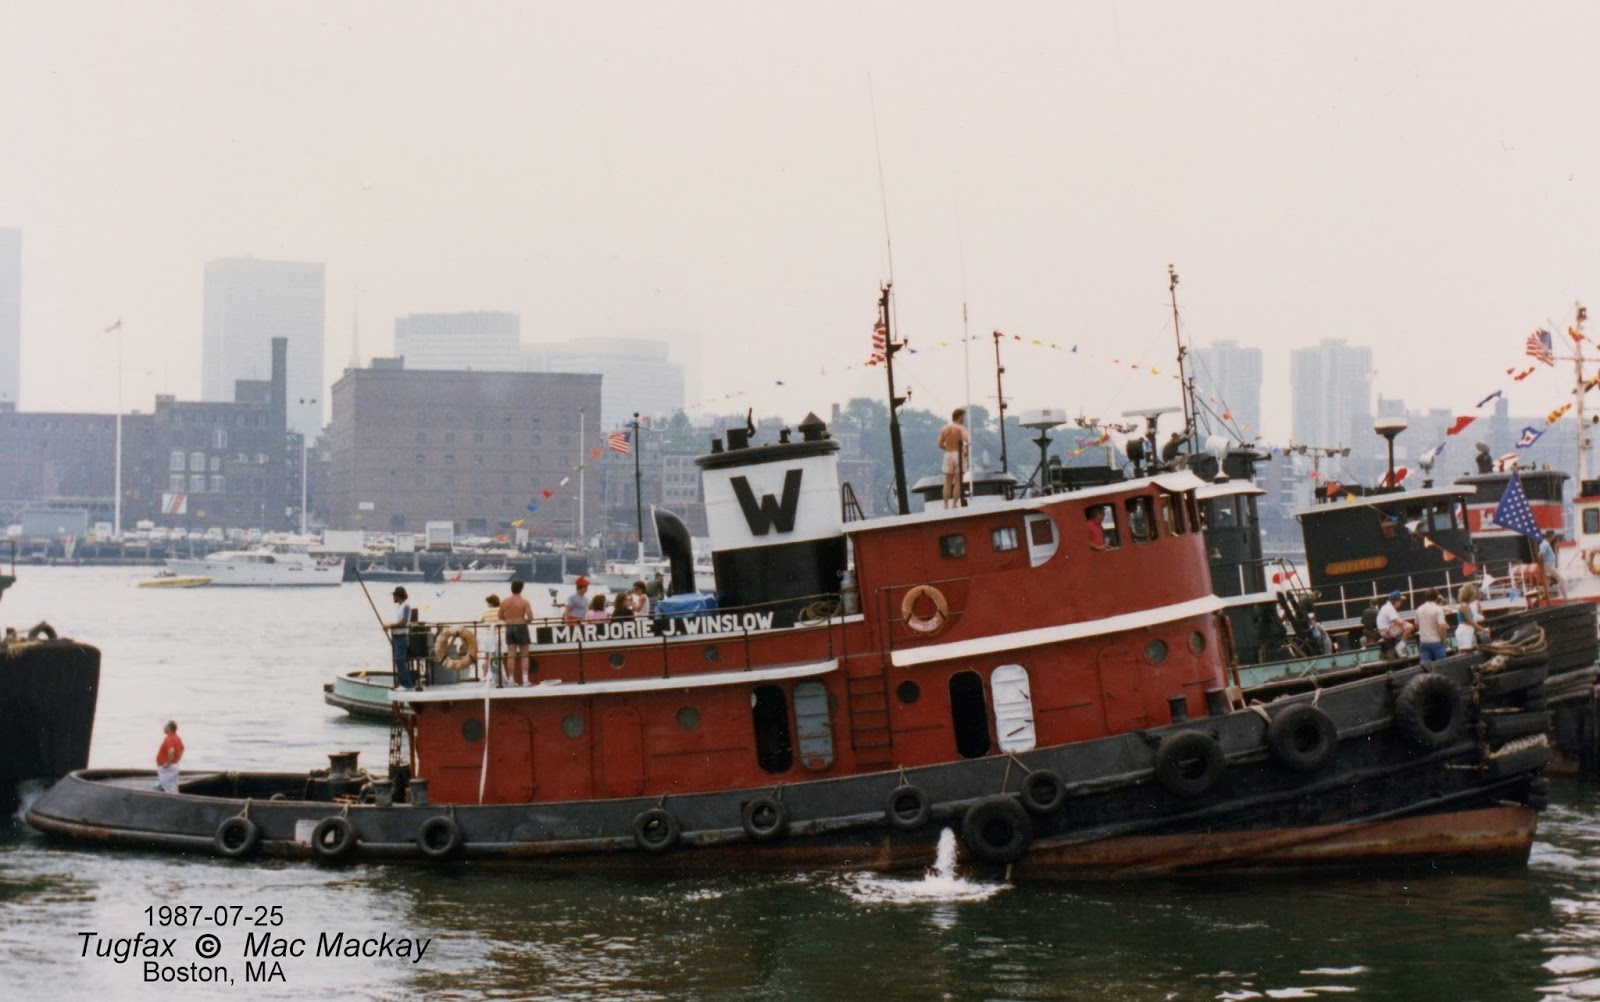 Tugfax classic tug lost off maine with updates for Bjs portland maine